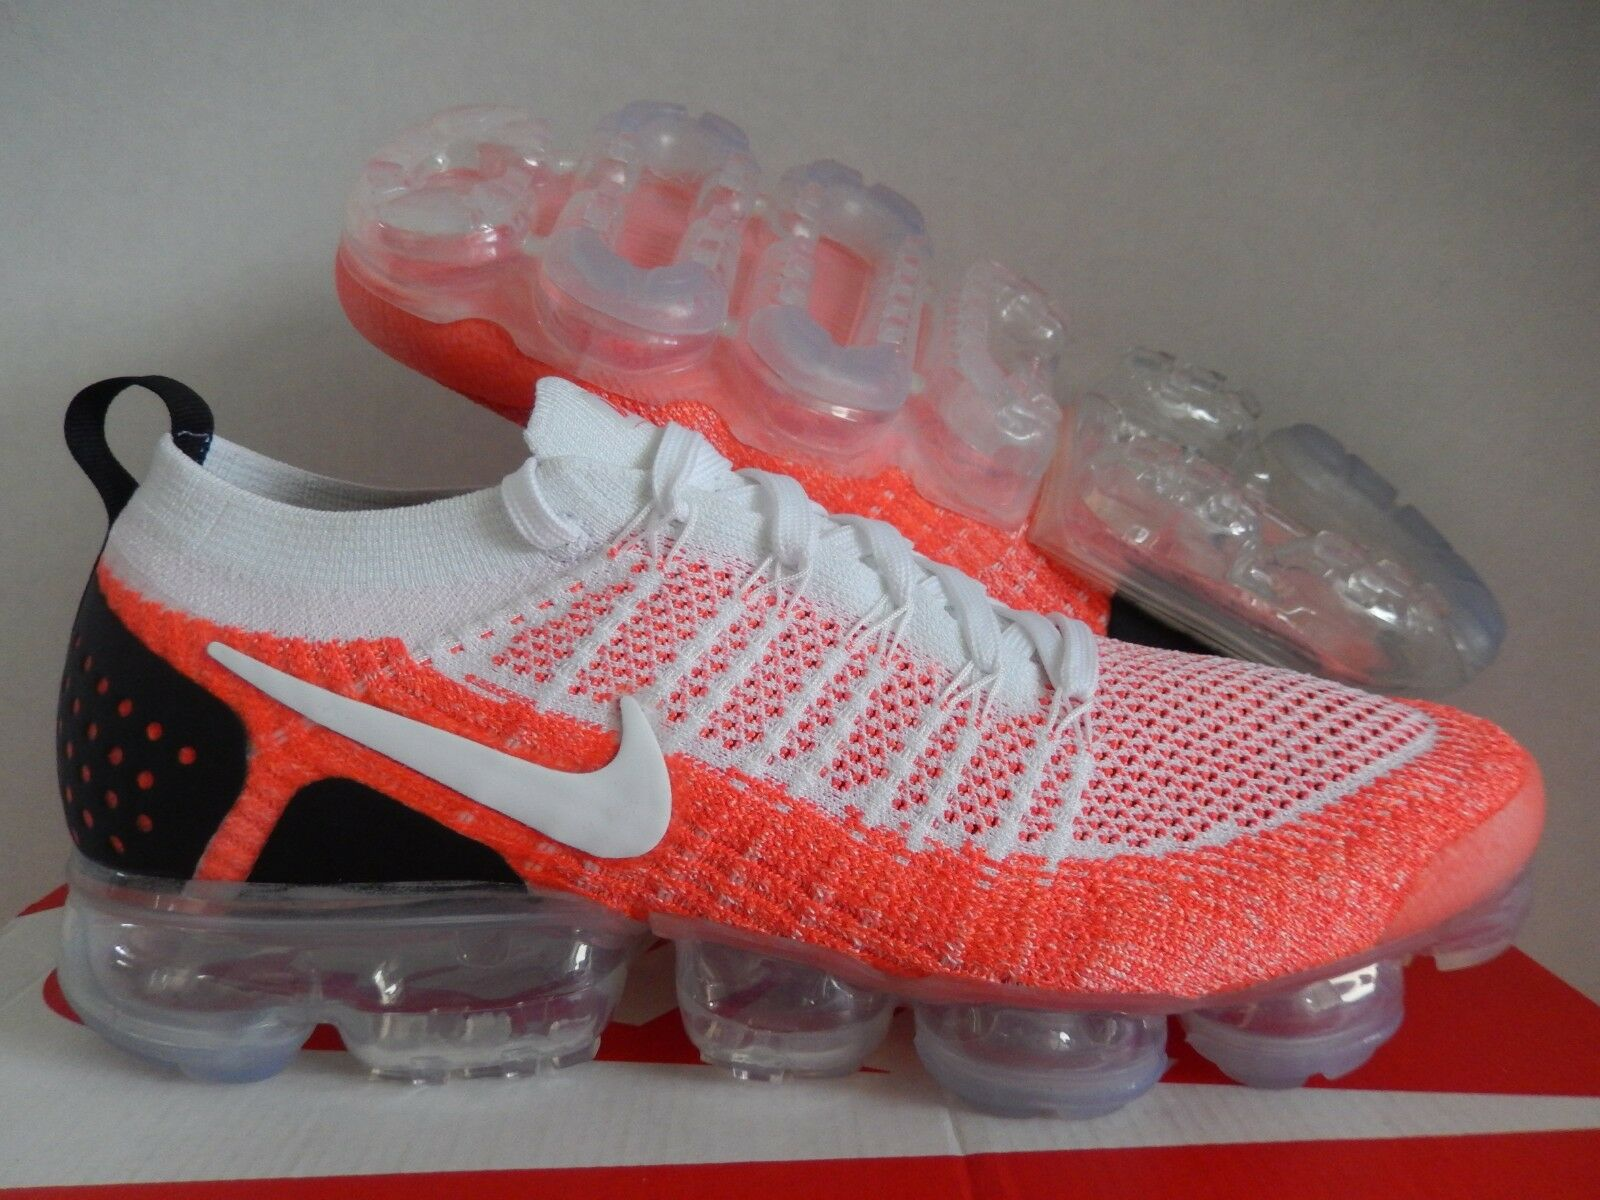 NIKE AIR VAPORMAX 2 FLYKNIT ID WHITE-HOT PUNCH SZ 10.5 [AV0723-991]